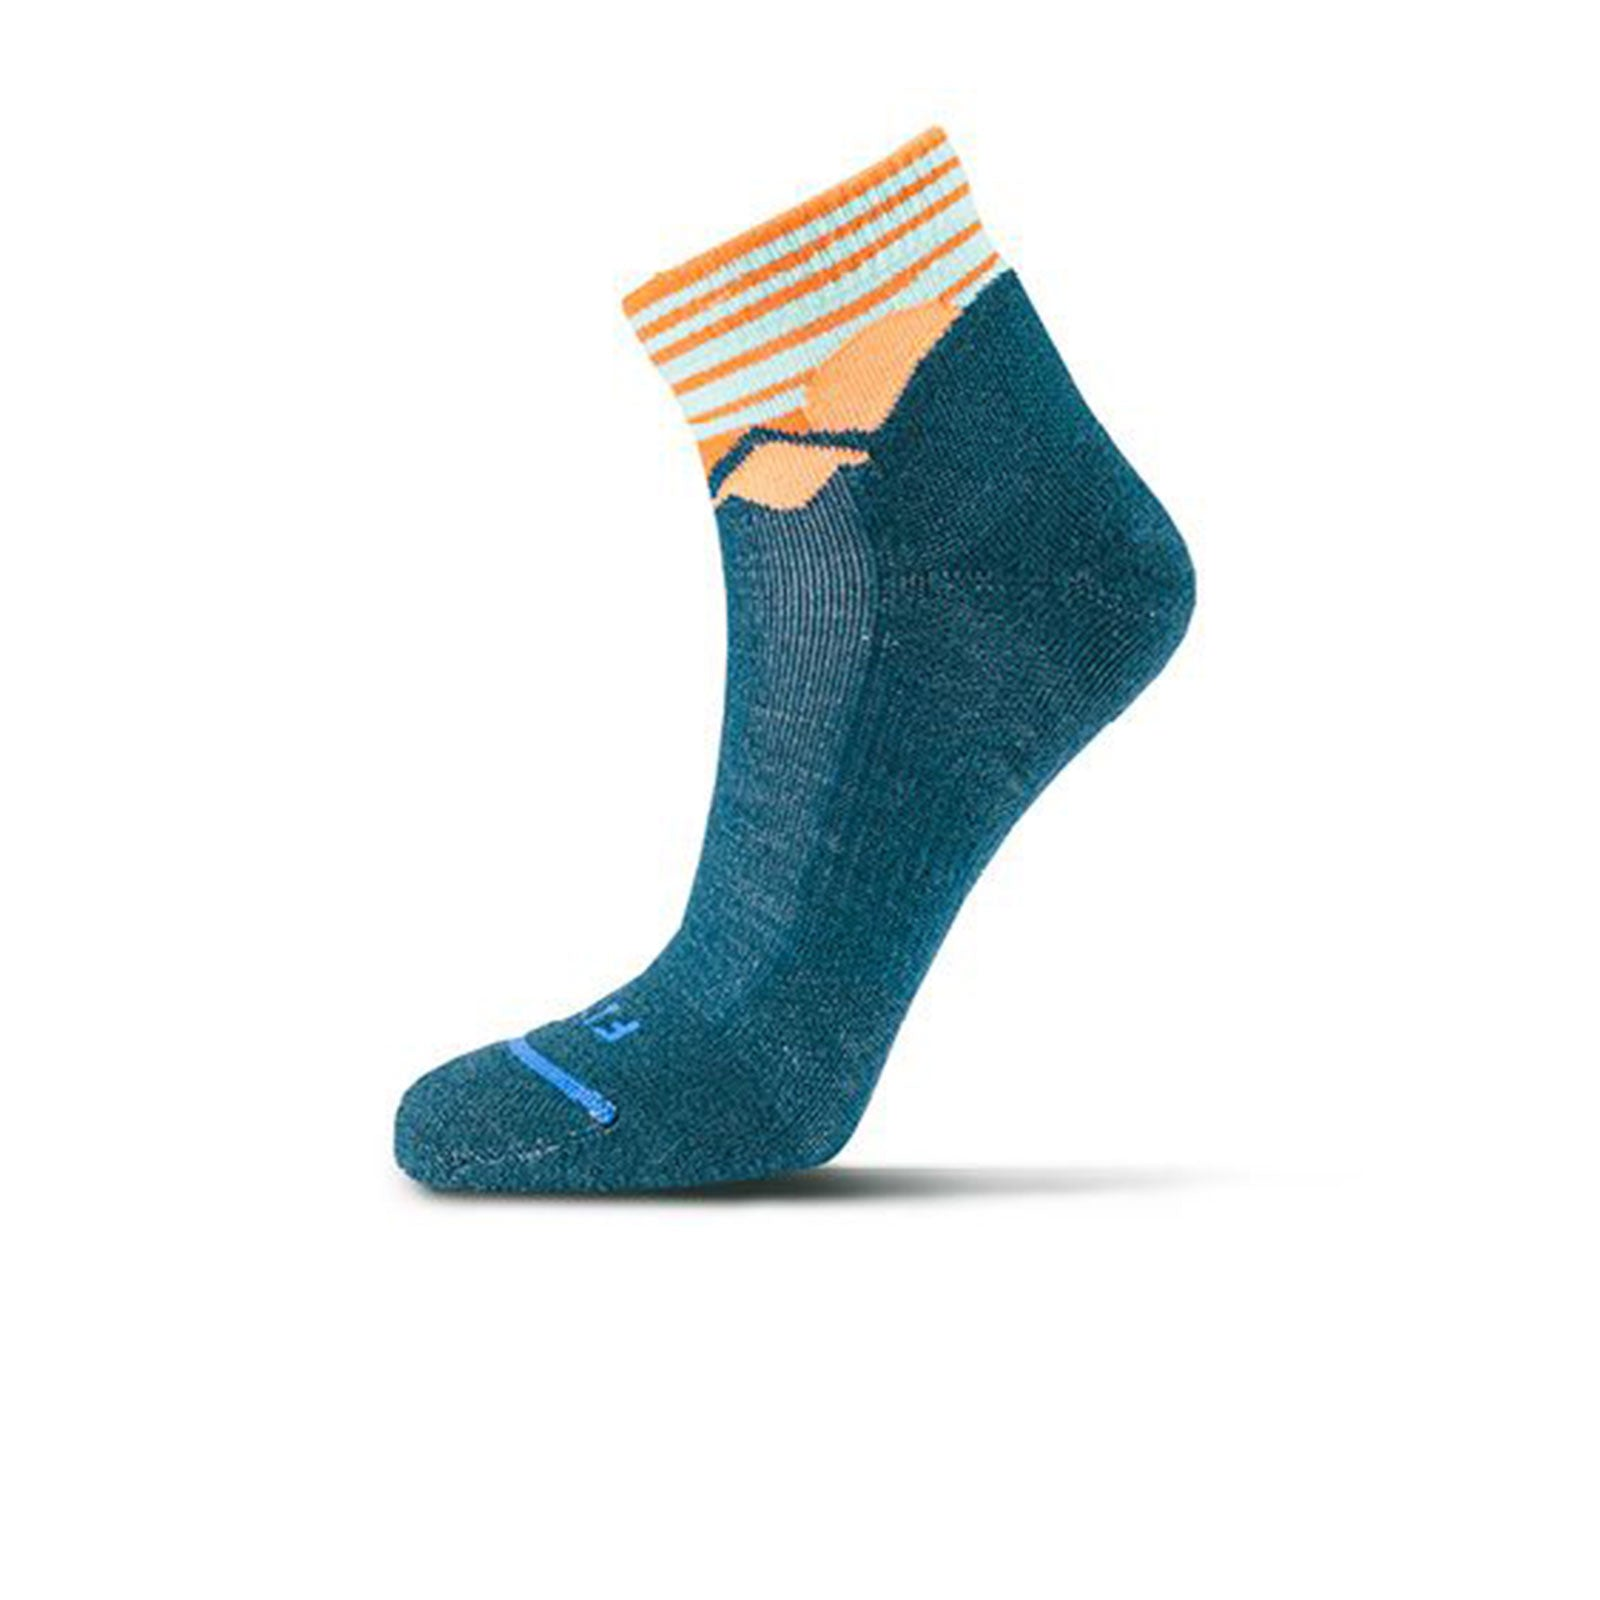 Fits Light Hiker Quarter (Unisex) - Reflecting Pond Socks - Perf - Mid Crew - The Heel Shoe Fitters